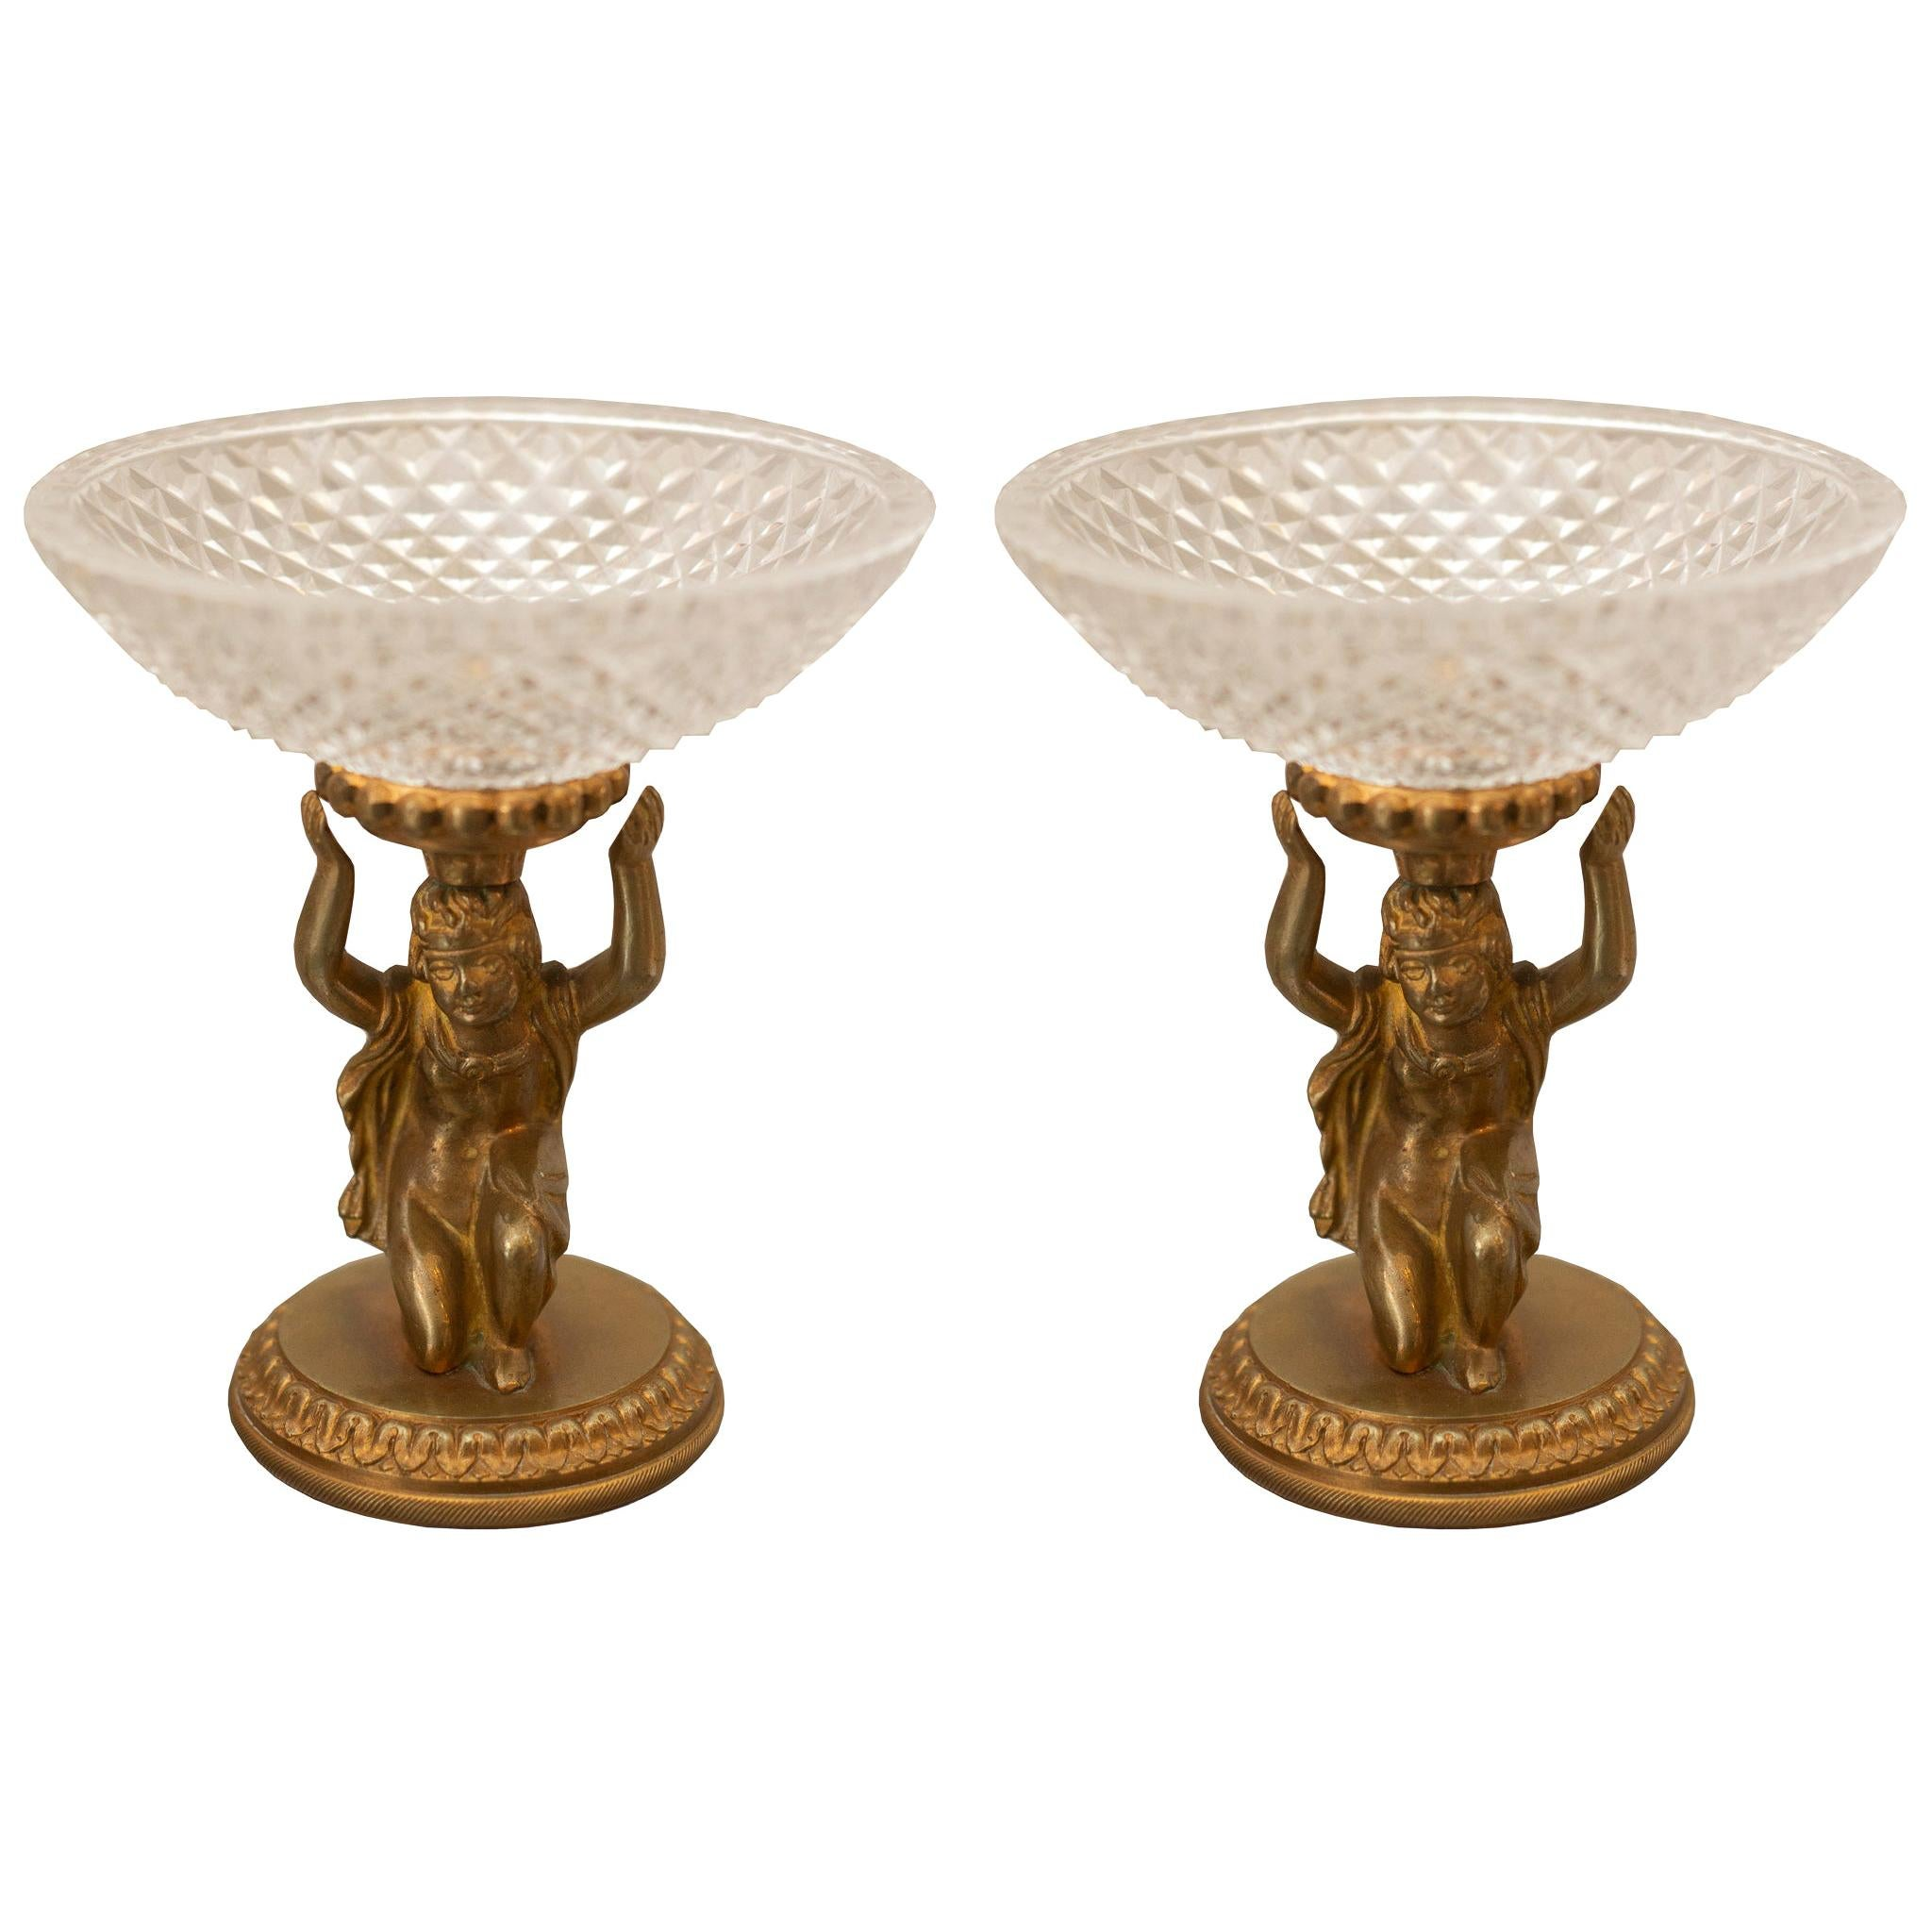 Pair of Antique Baccarat Cut Crystal and Brass Compotes